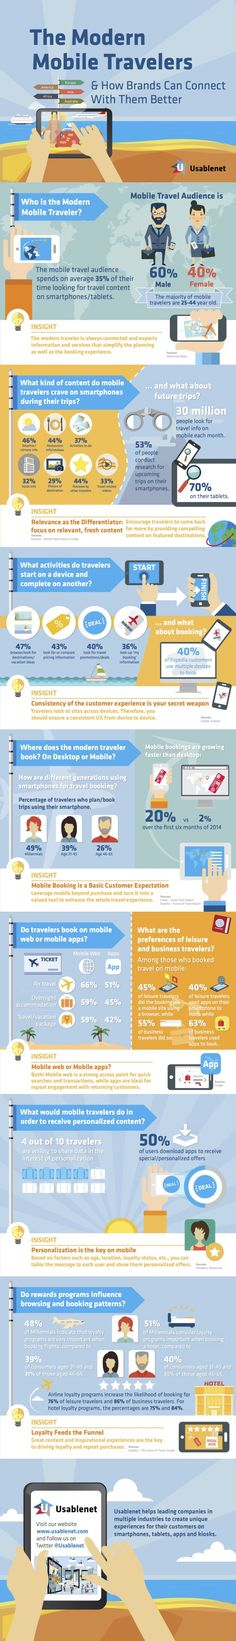 The Modern Mobile Travelers [INFOGRAPHIC]